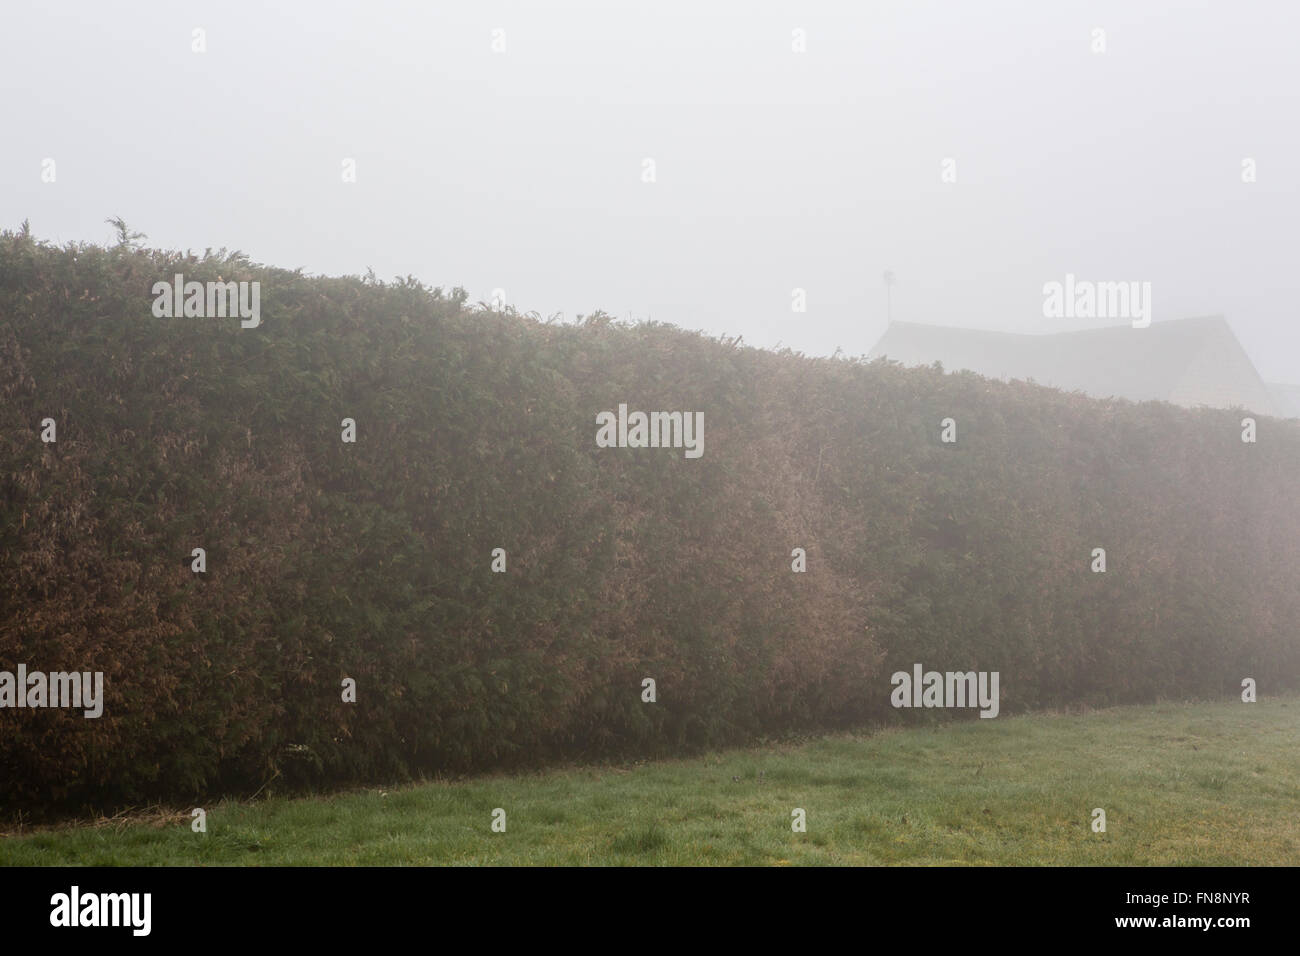 Trees hedges and bushes partially hidden by morning mist or fog in the country. - Stock Image